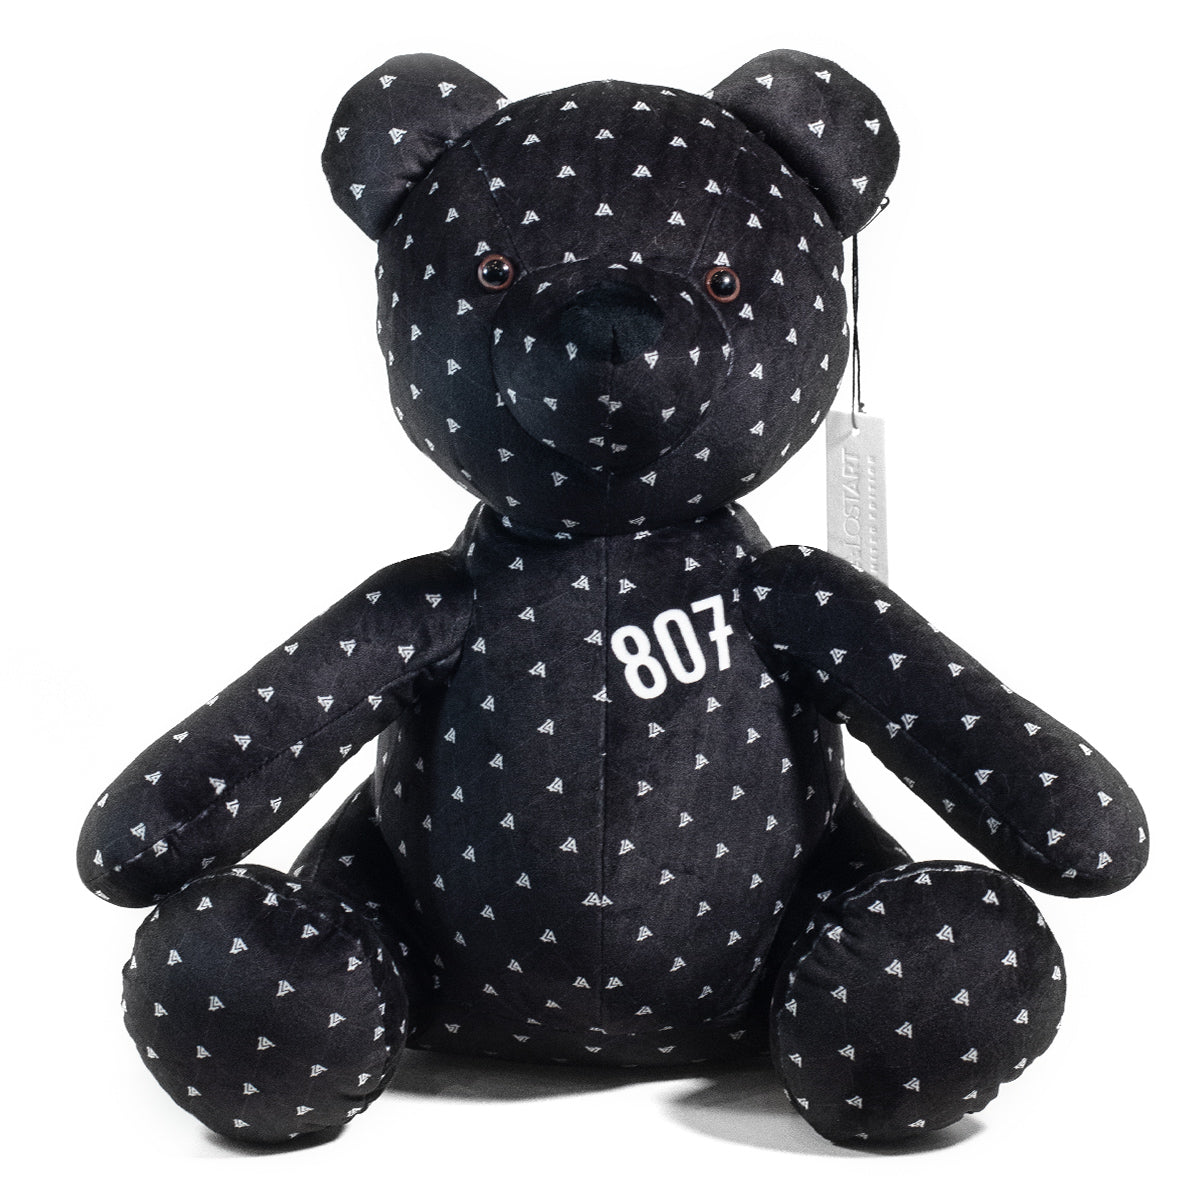 Lost Art Canada - black white patterned teddy bear front view